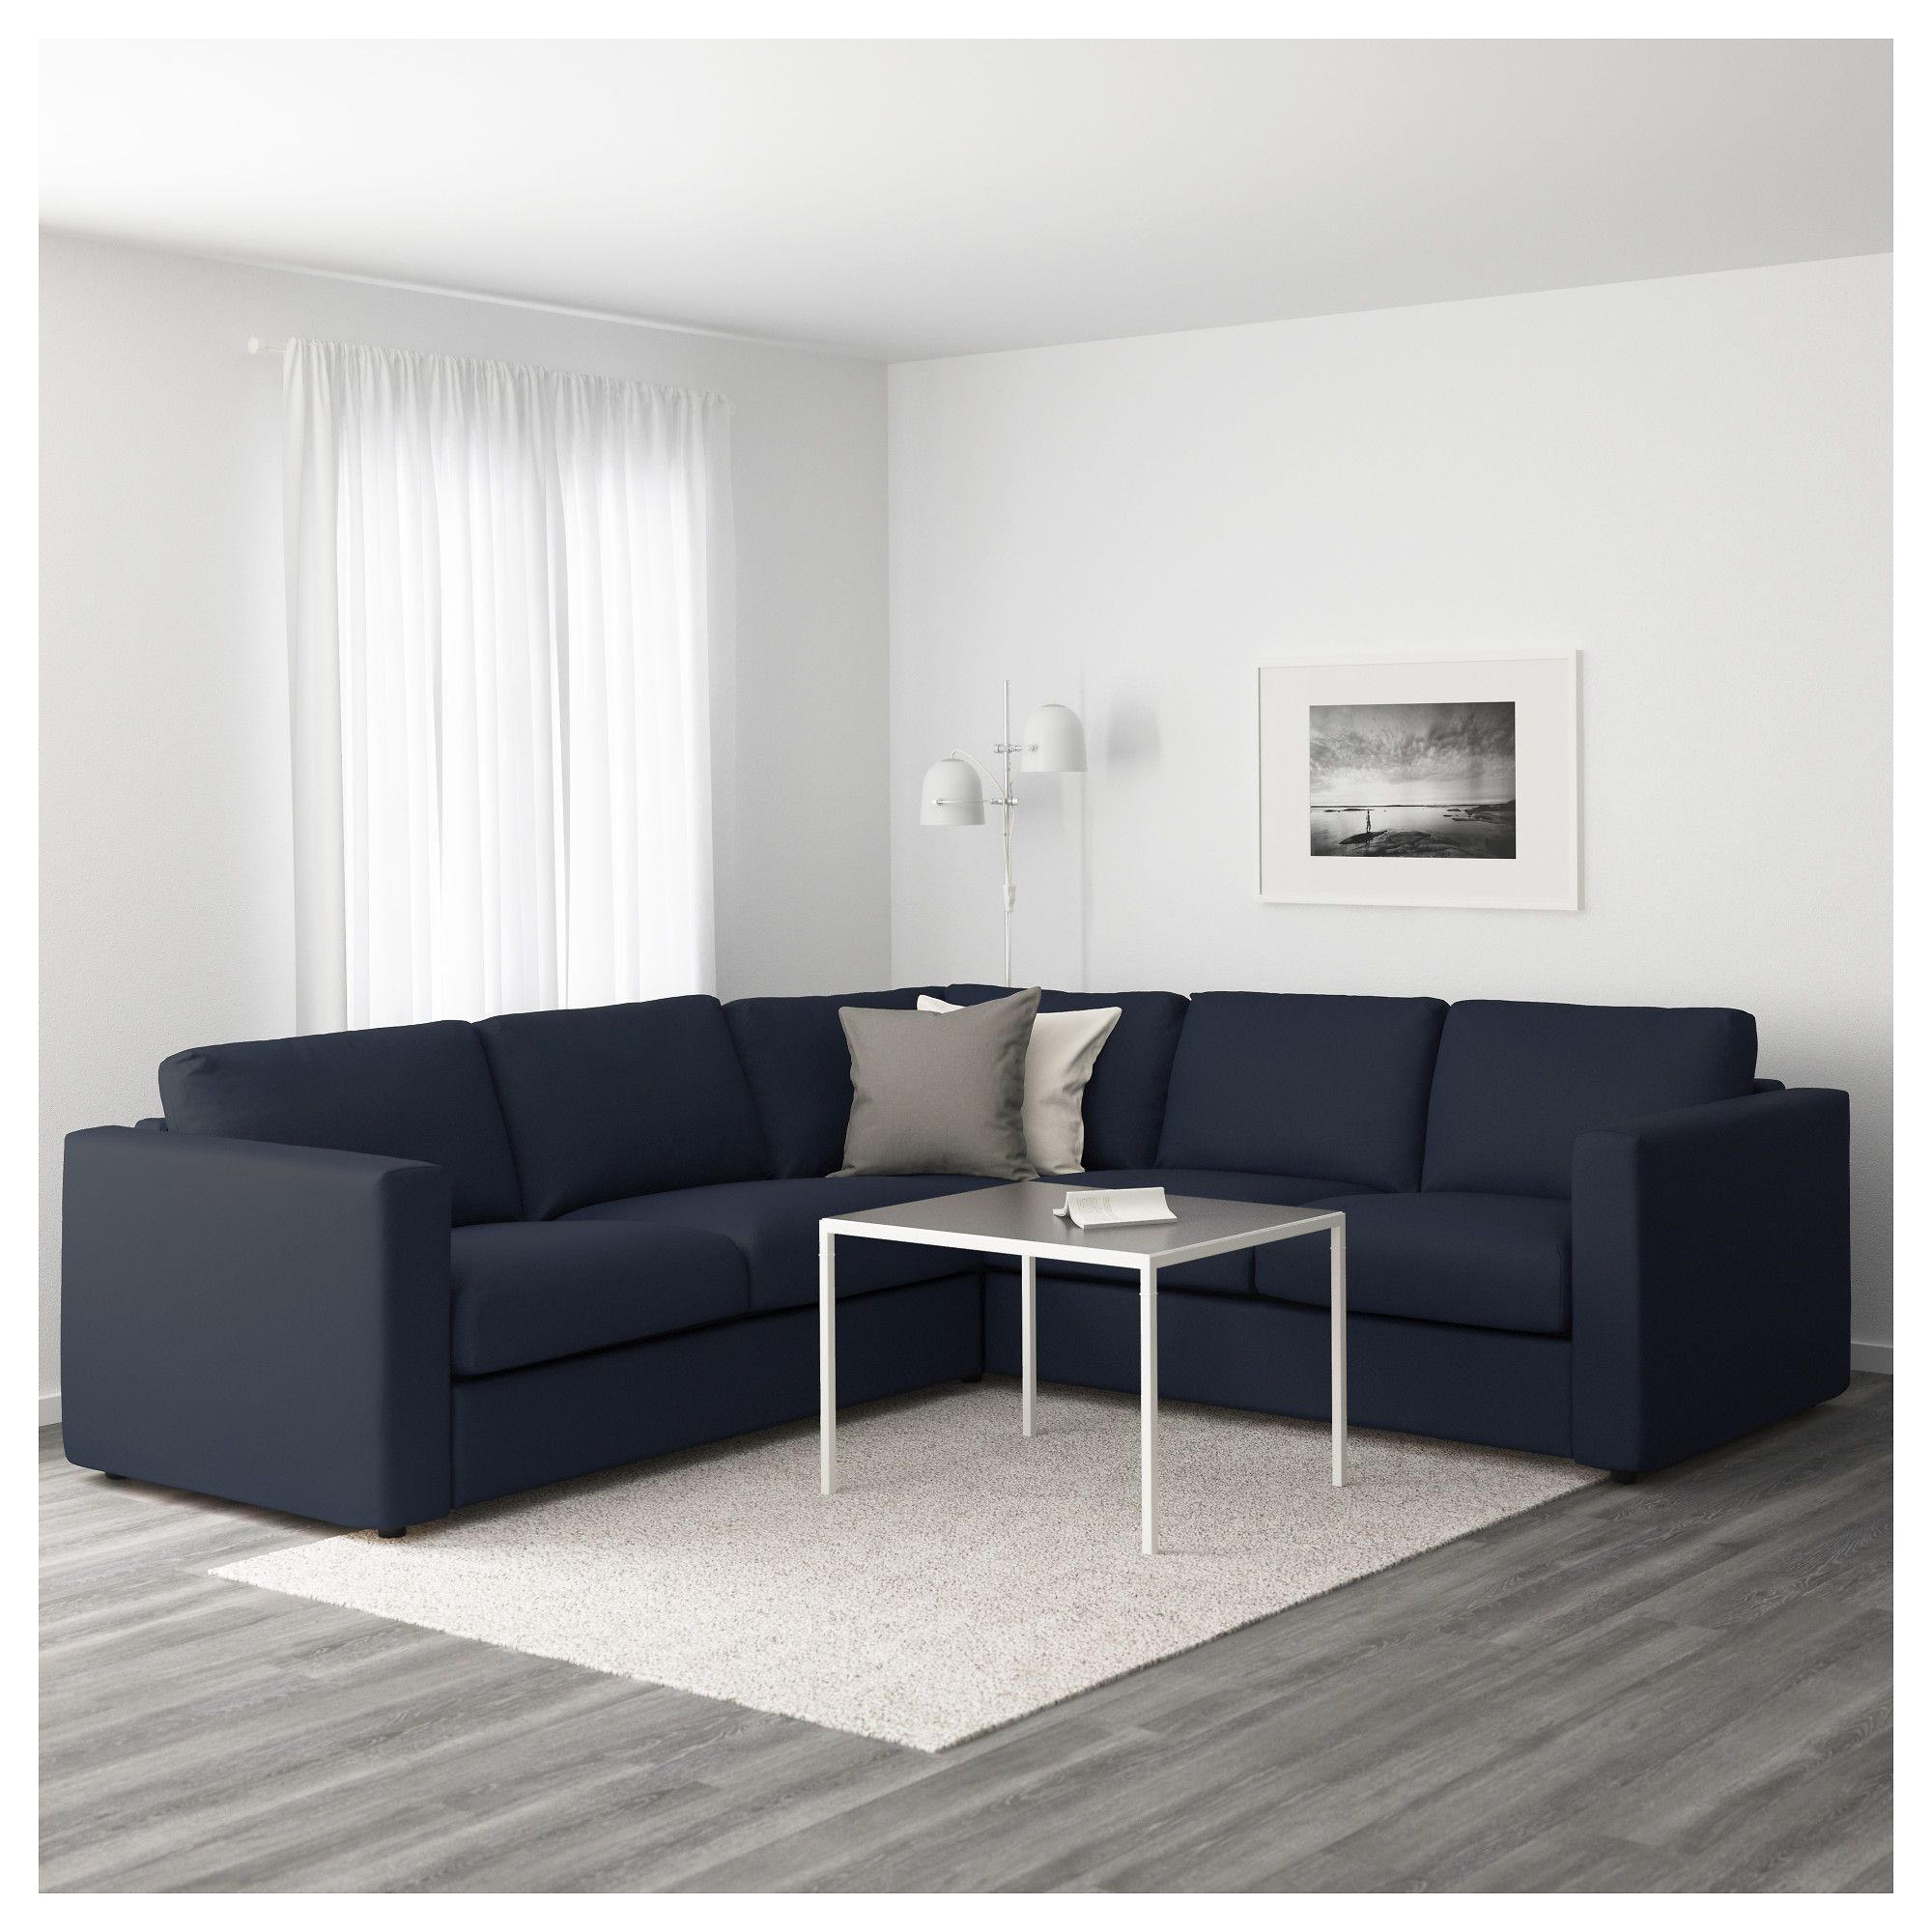 ikea vimle corner sofa 4 seat grasbo black blue this soft and cosy sofa will have a long life as the seat cushions are filled with high resilience foam